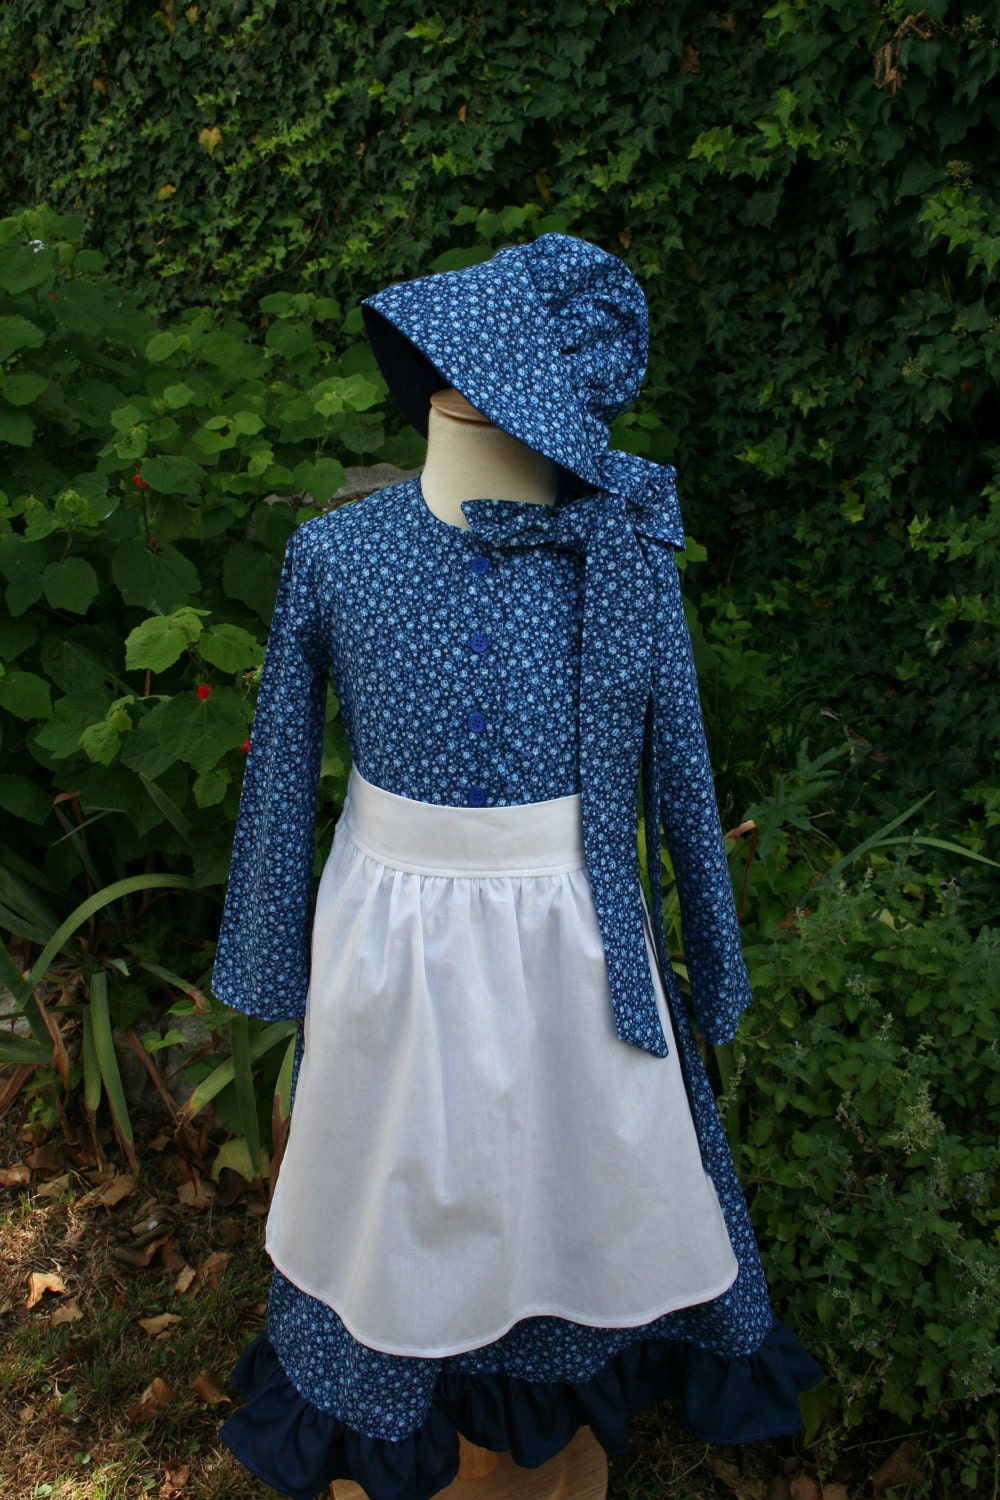 Little House on the prairie pioneer dress, apron, and bonnet